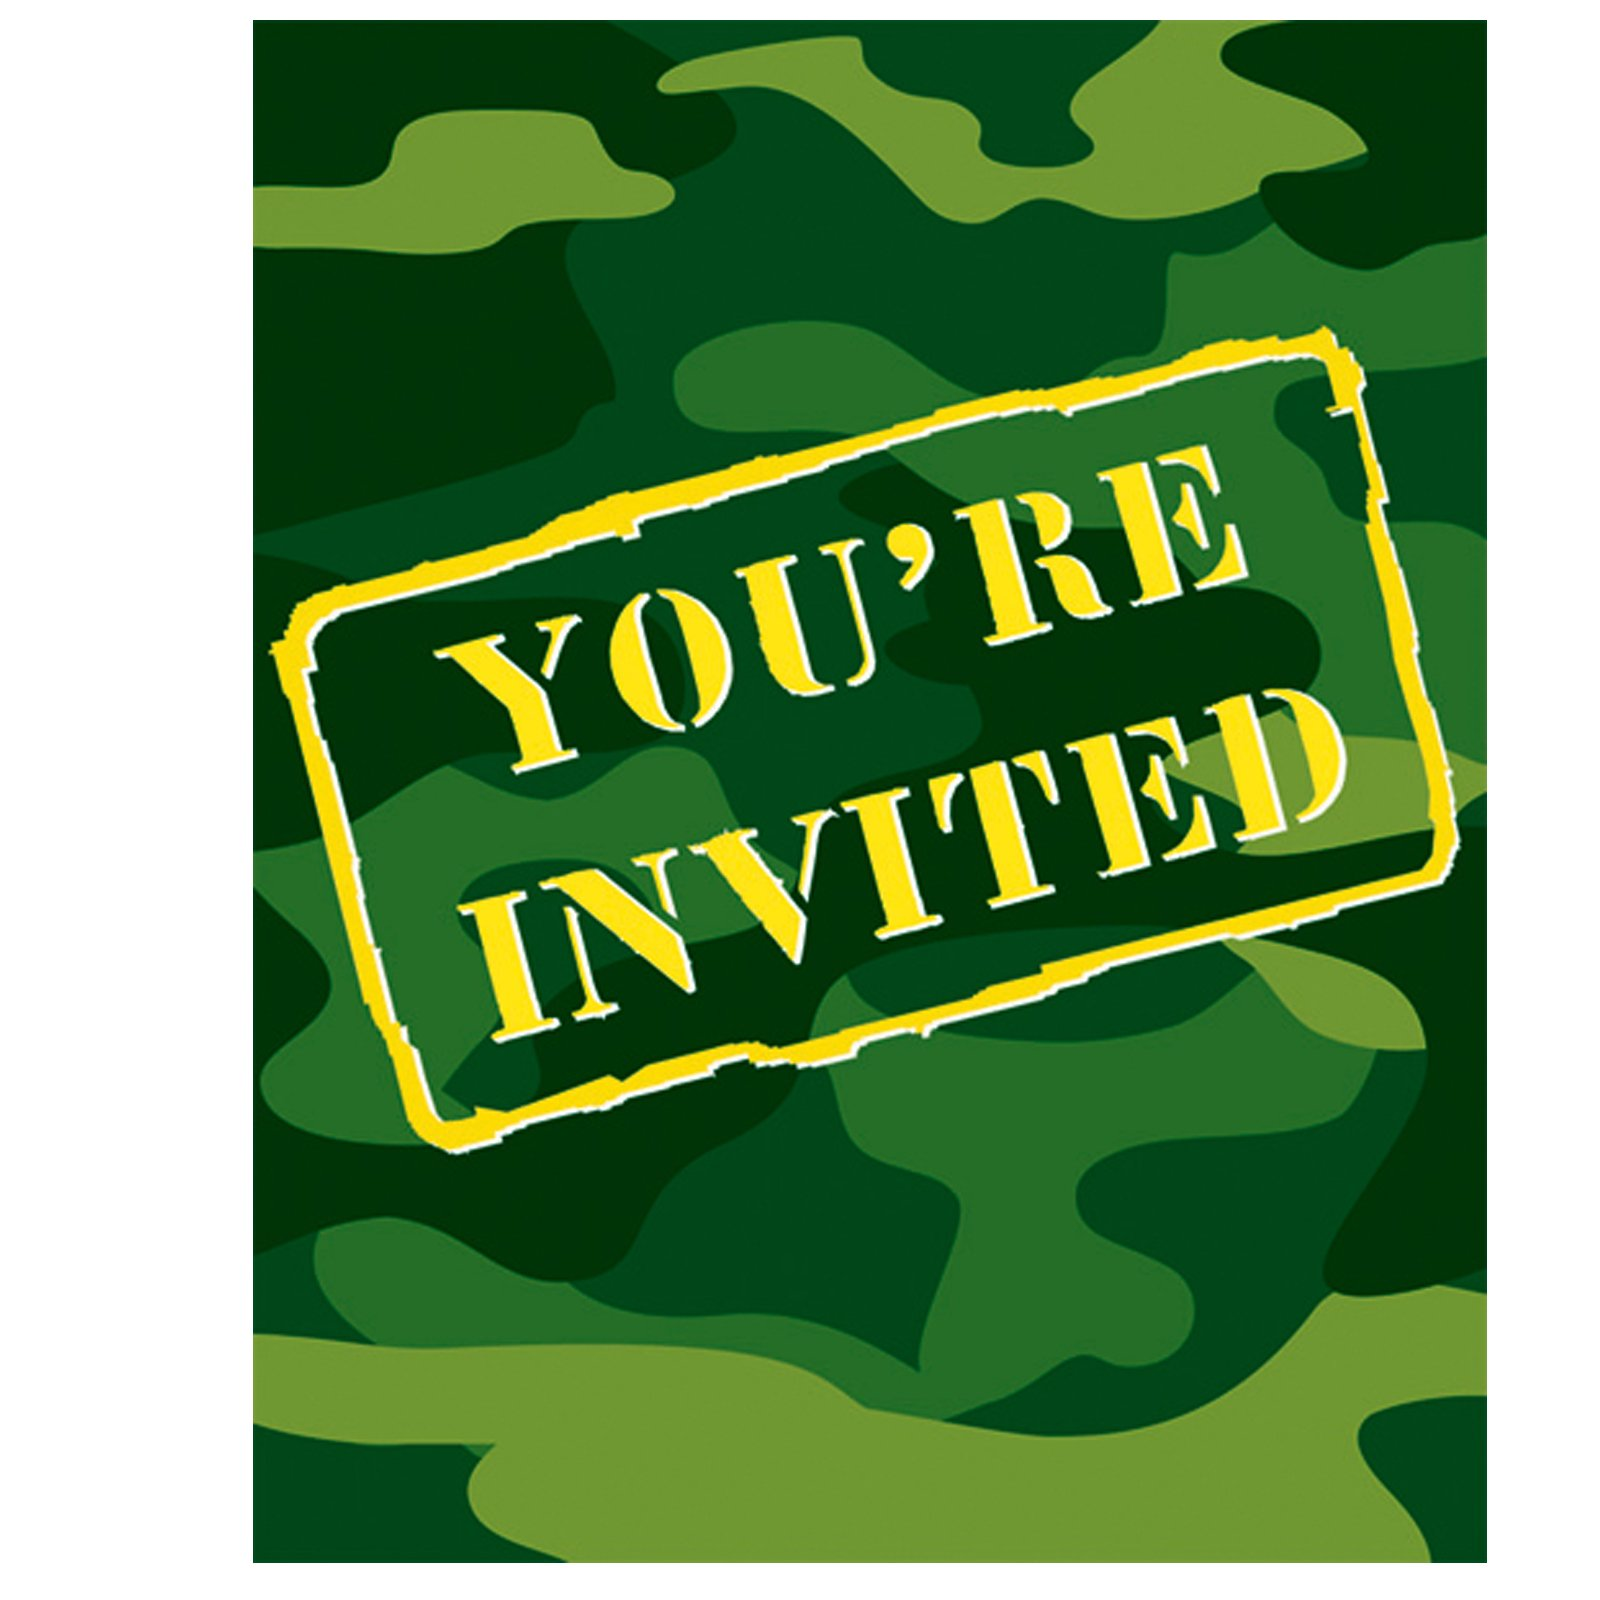 Camo Gear Invitations (8 count)